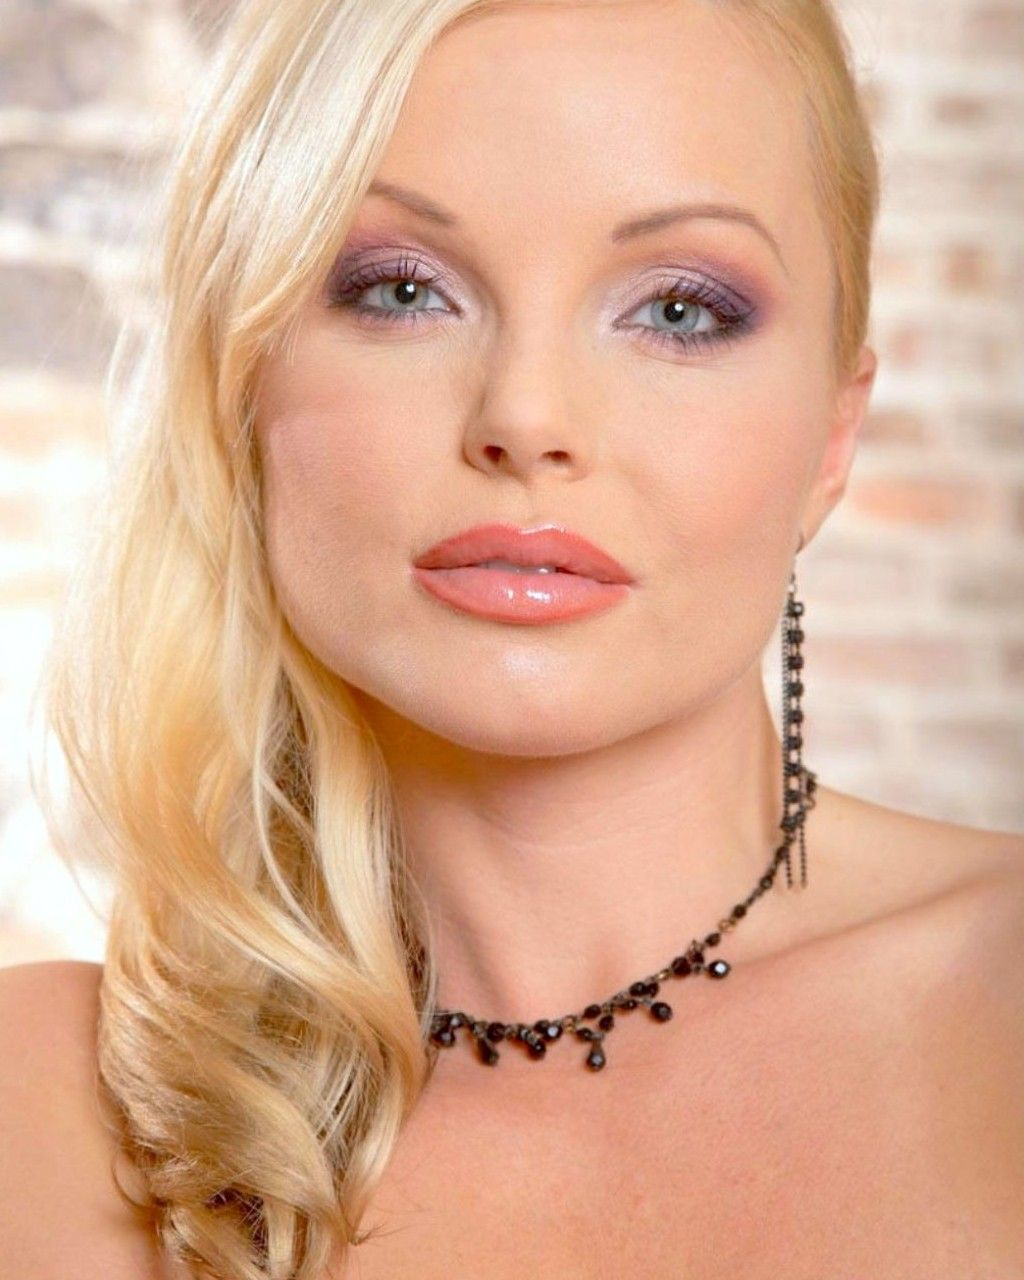 silvia saint www.babaimage.com images silvia-saint-wallpapers-just-good-